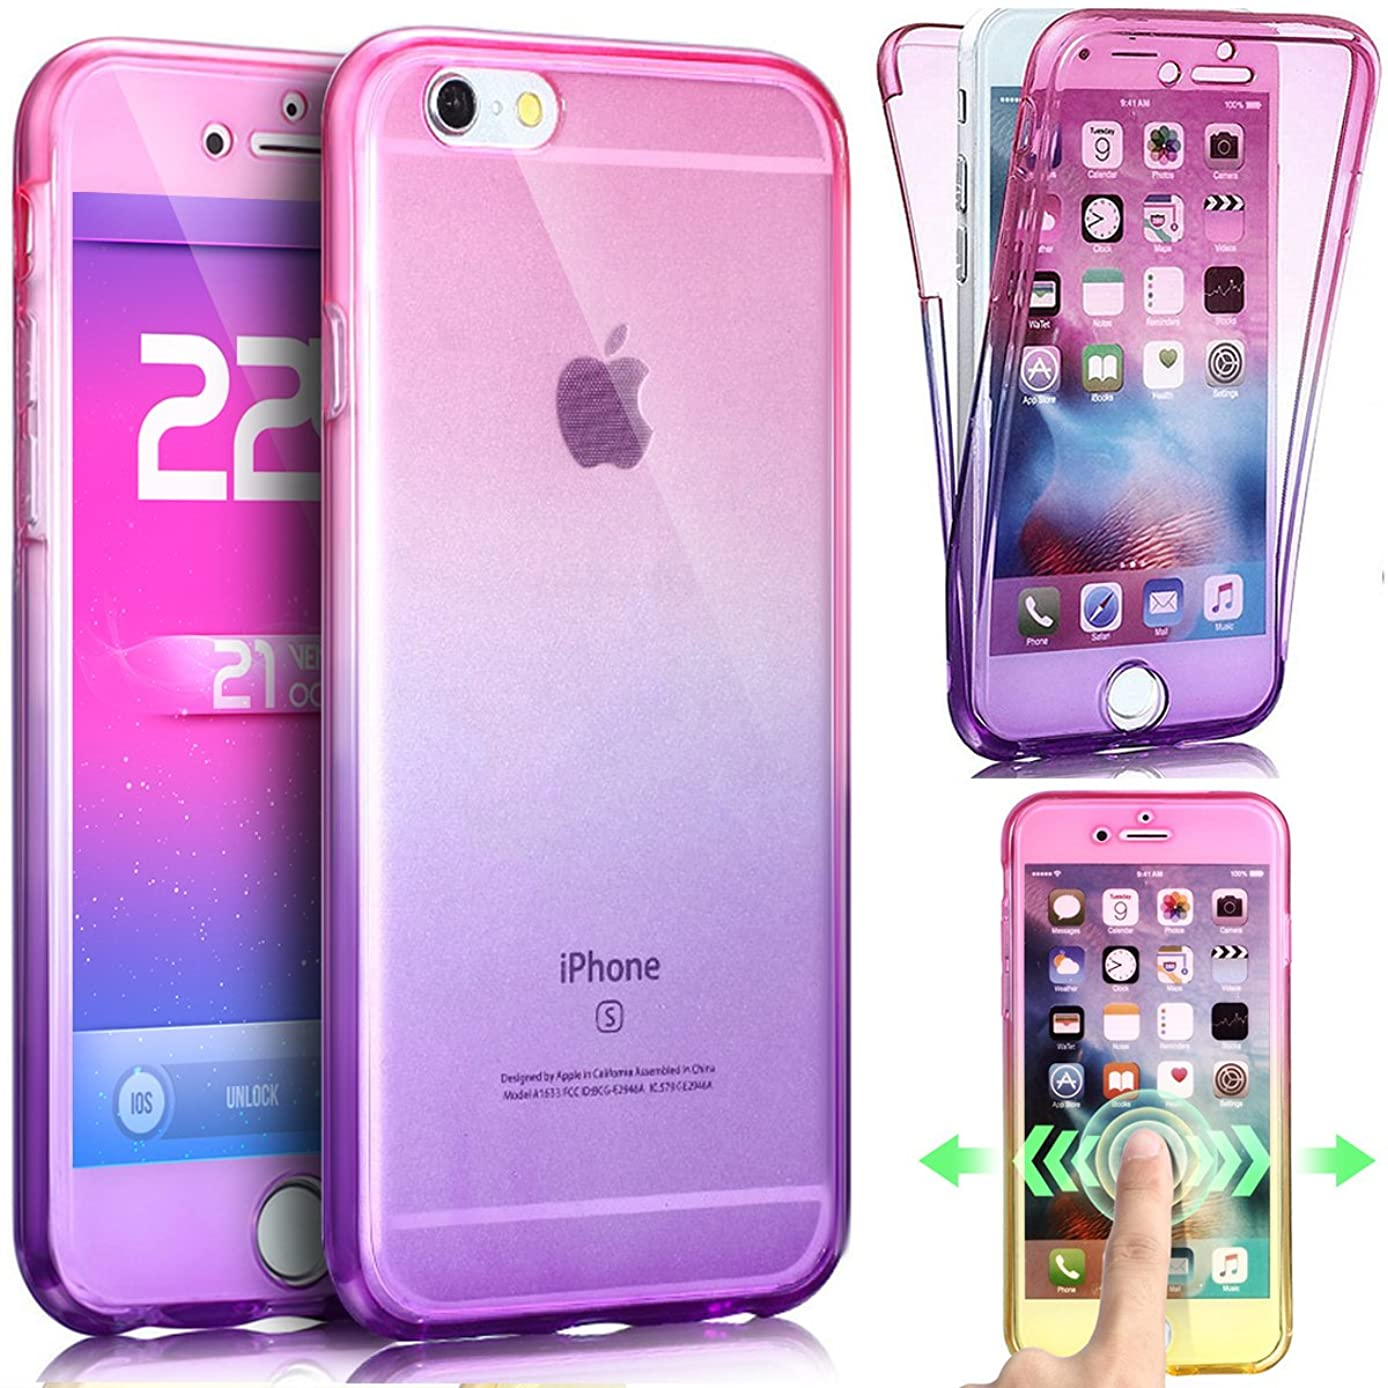 iPhone 8 Case,iPhone 7 Case,ikasus [Full-Body 360 Coverage] Gradient Color Ultra-Slim Scratch-Resistant Front Back Full Coverage Soft Clear TPU Silicone Rubber Case Cover for iPhone 8/7,Pink Purple